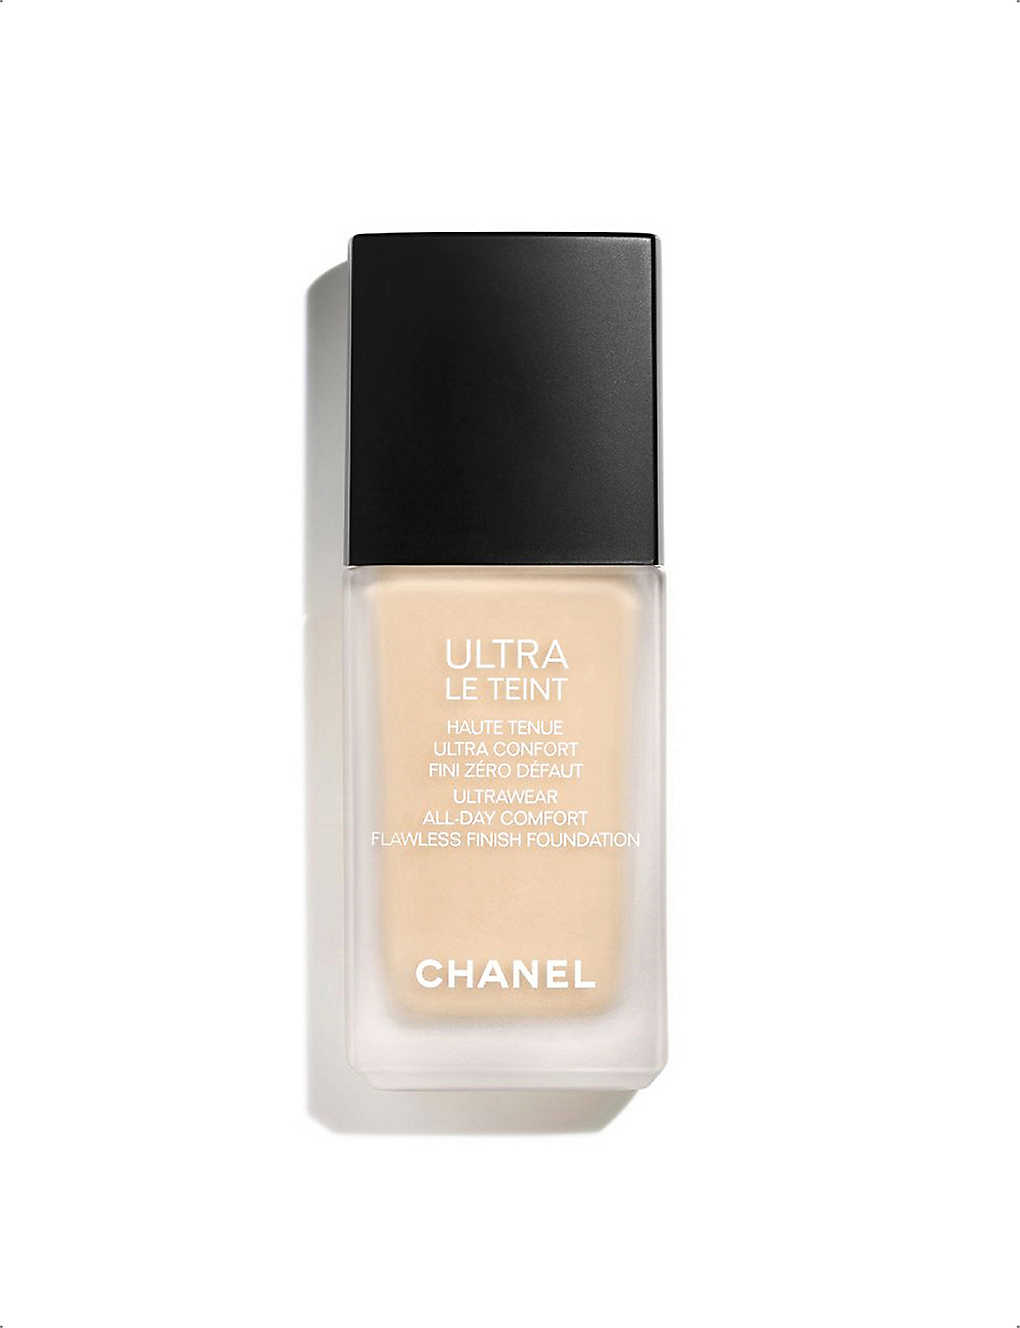 <STRONG>ULTRA LE TEINT</STRONG> Ultrawear All-Day Comfort Flawless Finish Foundation 30ml